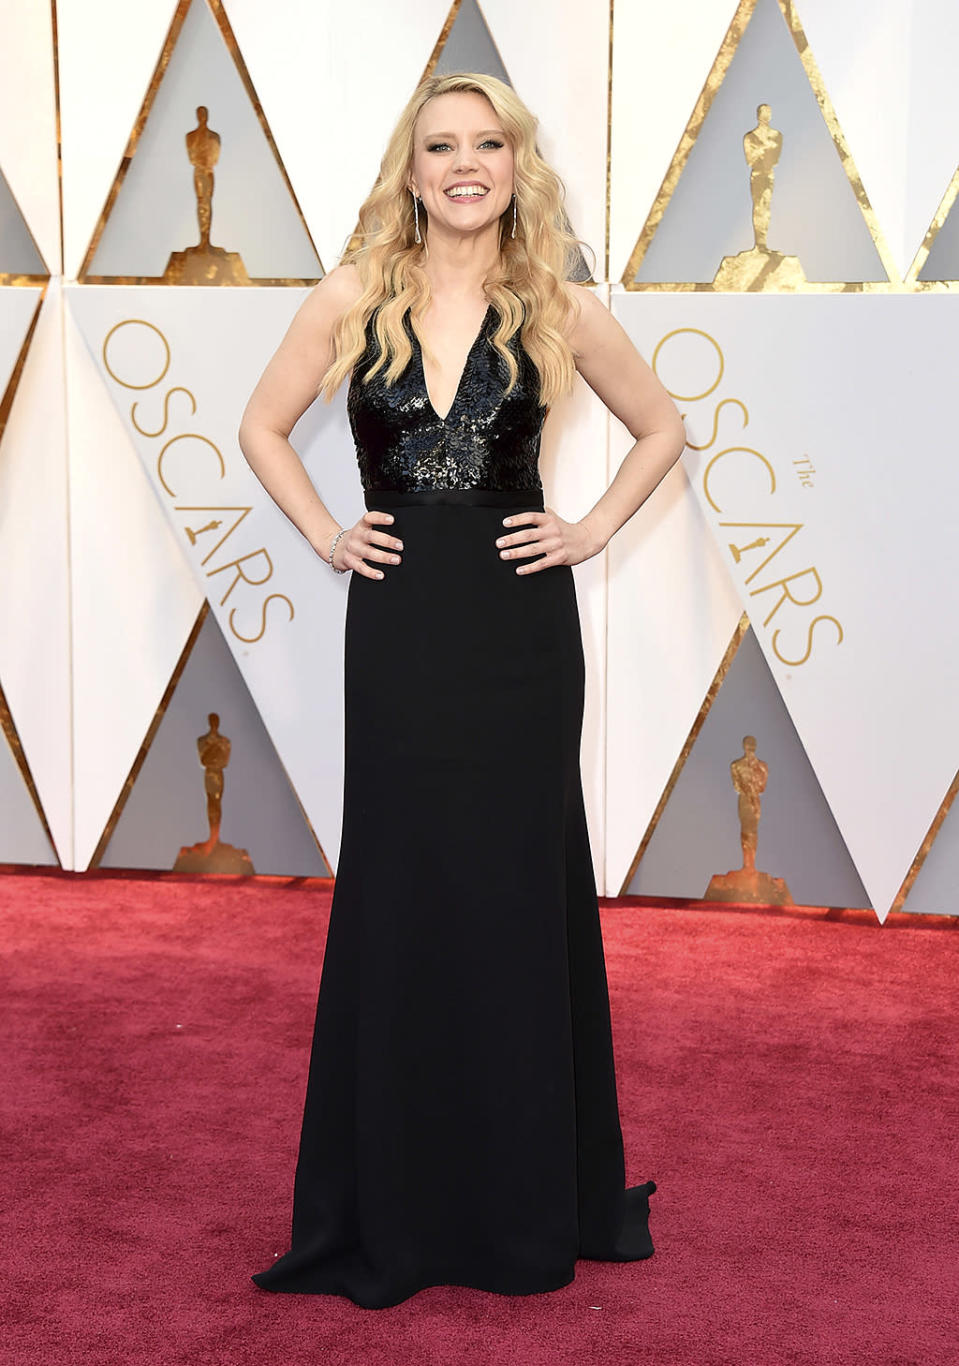 <p>Kate McKinnon arrives at the Oscars on Sunday, Feb. 26, 2017, at the Dolby Theatre in Los Angeles. (Photo by Jordan Strauss/Invision/AP) </p>